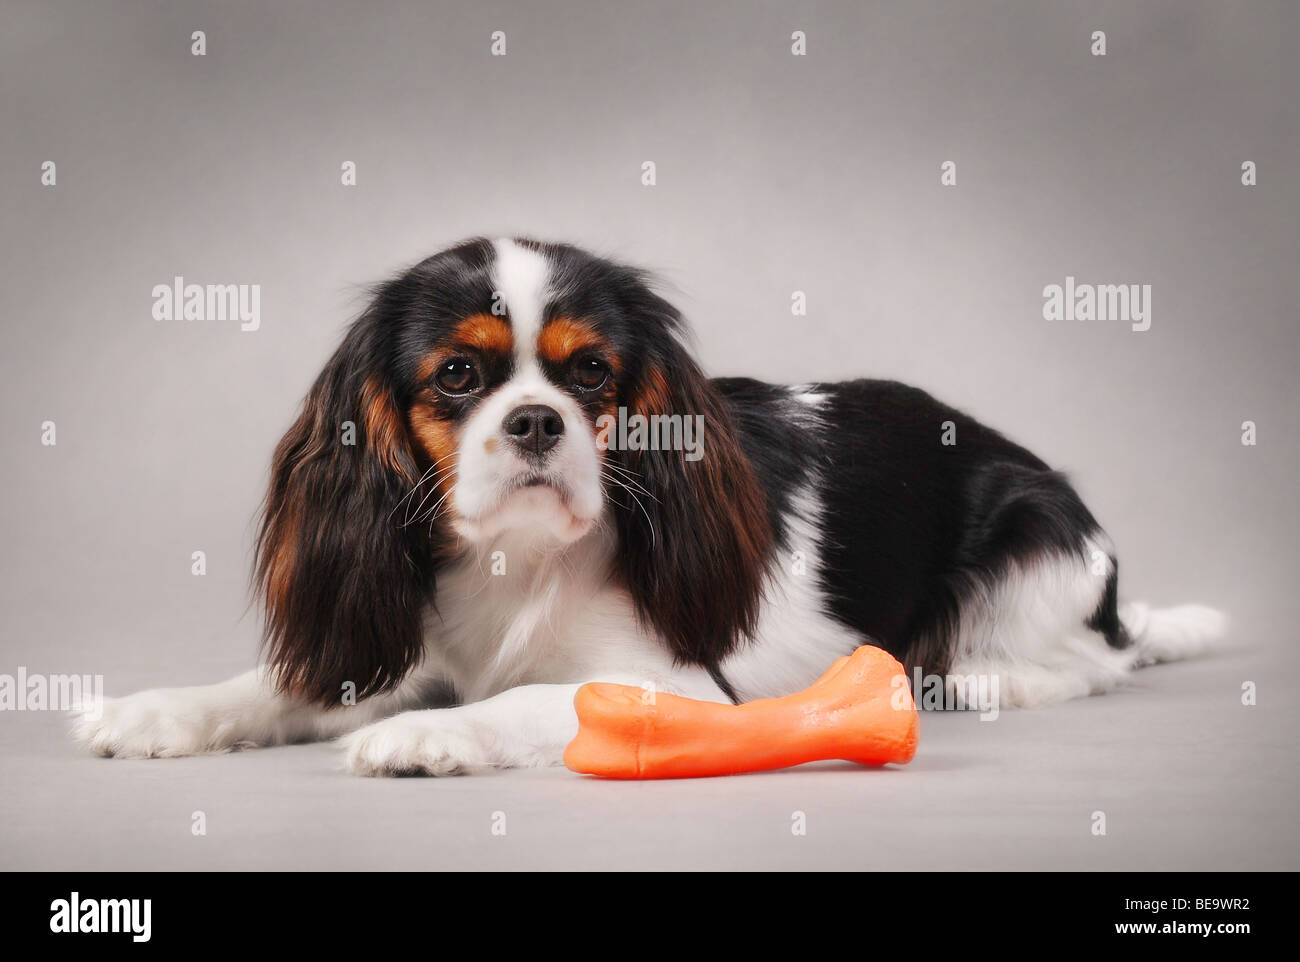 CAVALIER KING CHARLES SPANIEL with toy on the grey background - Stock Image